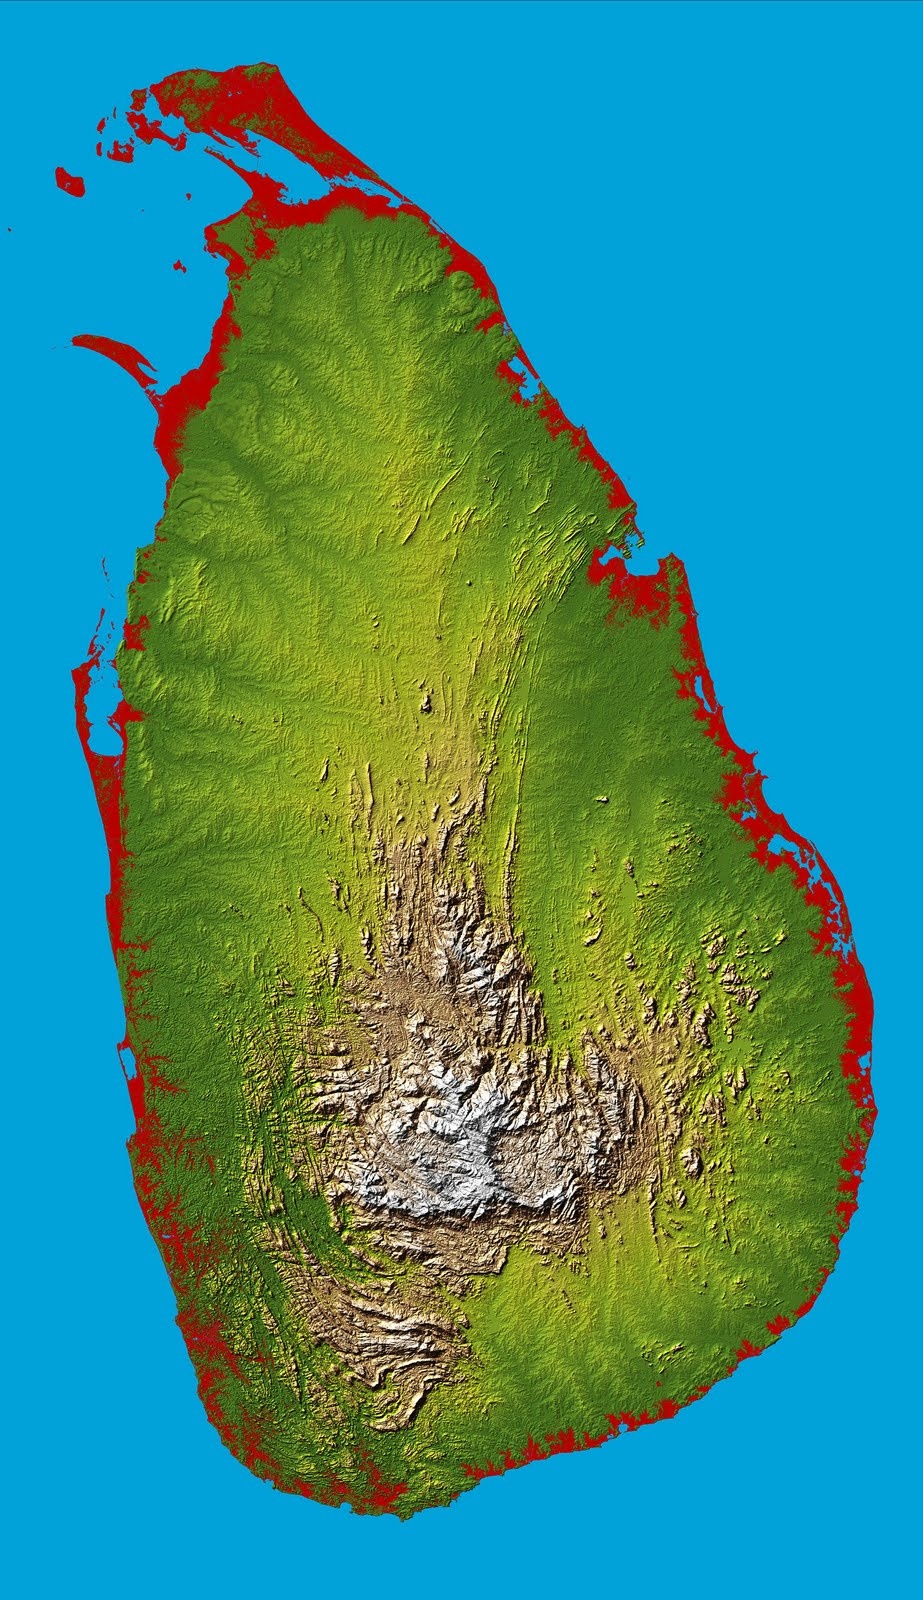 the topography of our nation is well shown in this color coded shaded relief map generated with digital elevation data from the shuttle radar topography